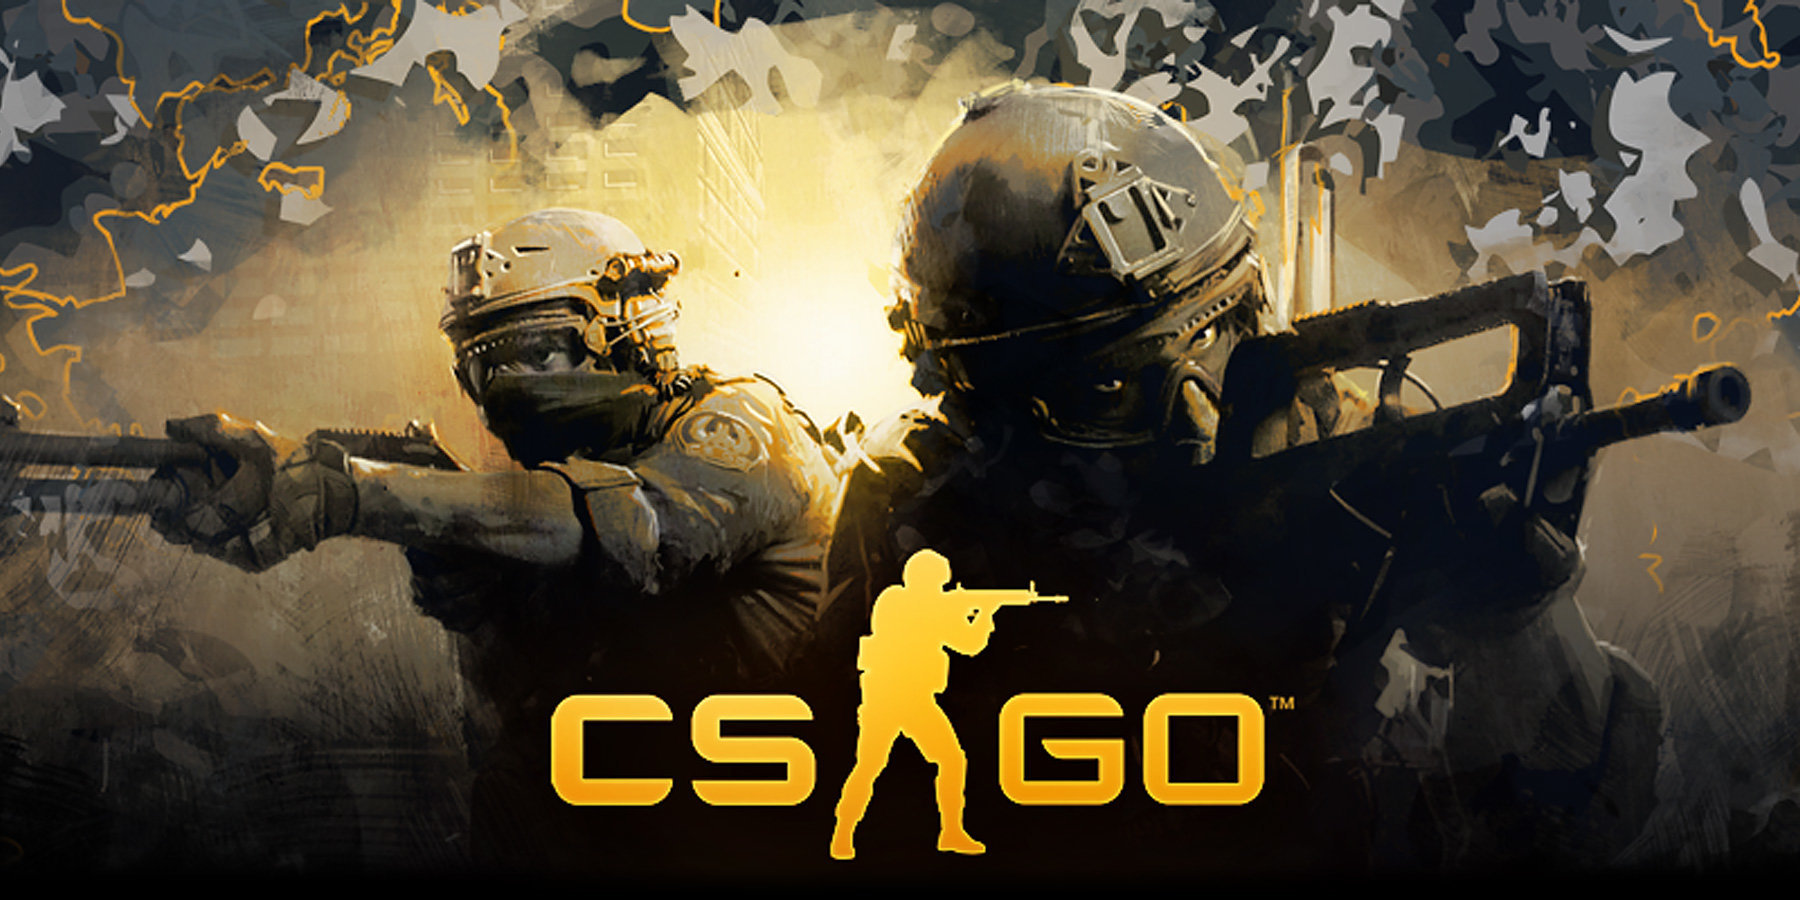 CS:GO\DOTA 2 ACCOUNTFrom1500+ HOUR🌎Sda + steam guard🔑